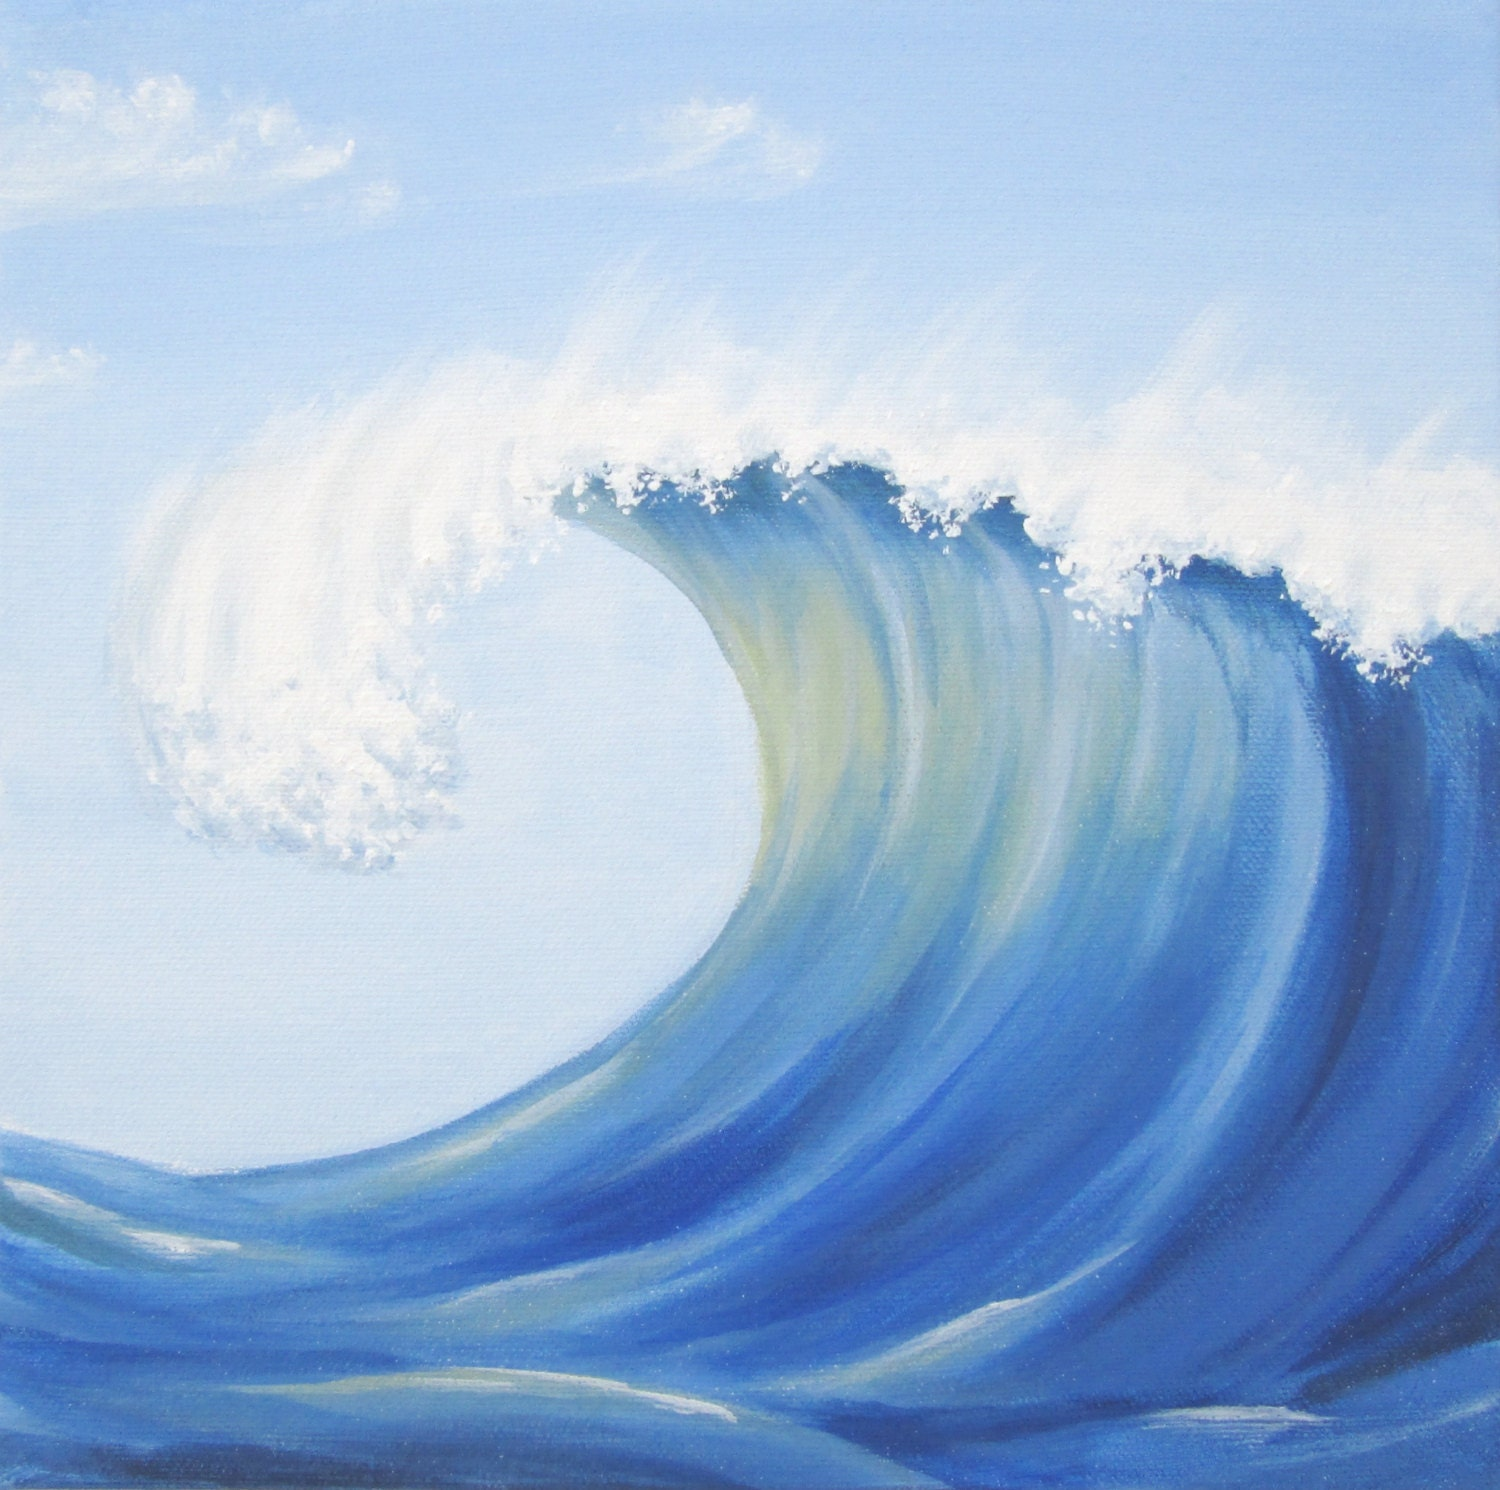 blue ocean wave, blue wave art, wave painting, breaker art, crashing wave art, blue sea acrylic painting